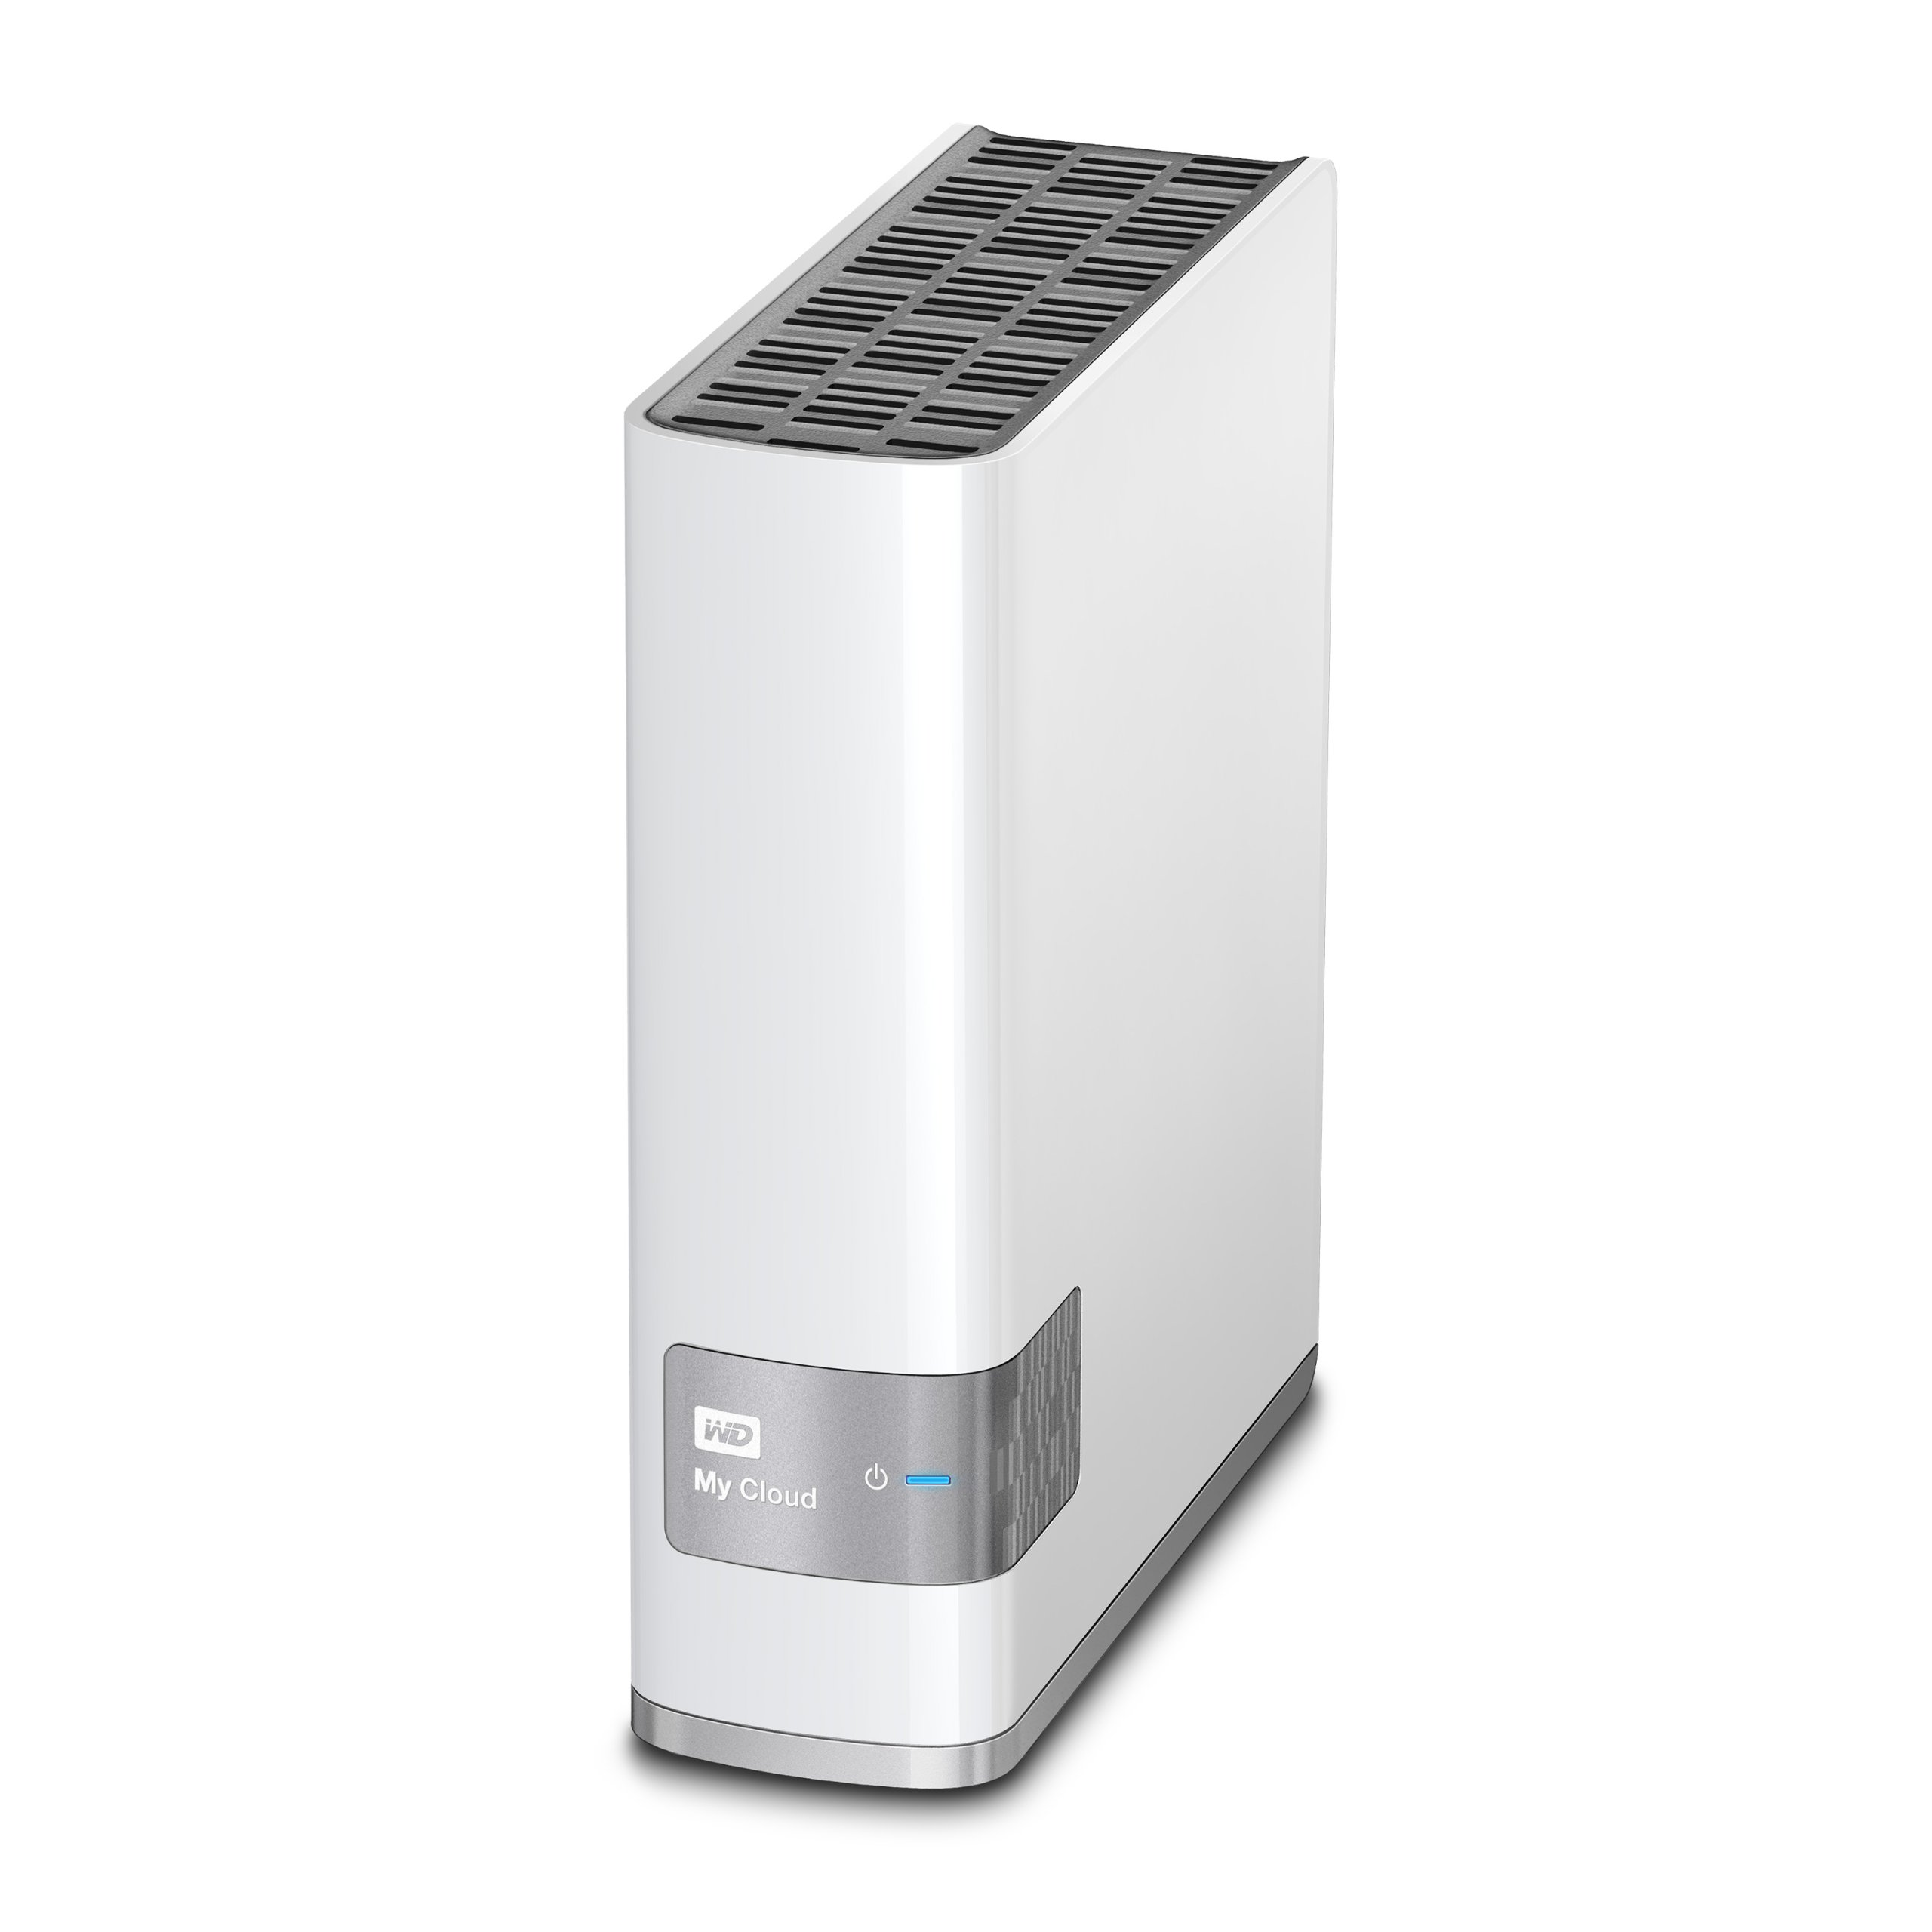 WD 8TB My Cloud Personal Network Attached Storage - NAS - WDBCTL0080HWT-NESN by Western Digital (Image #2)